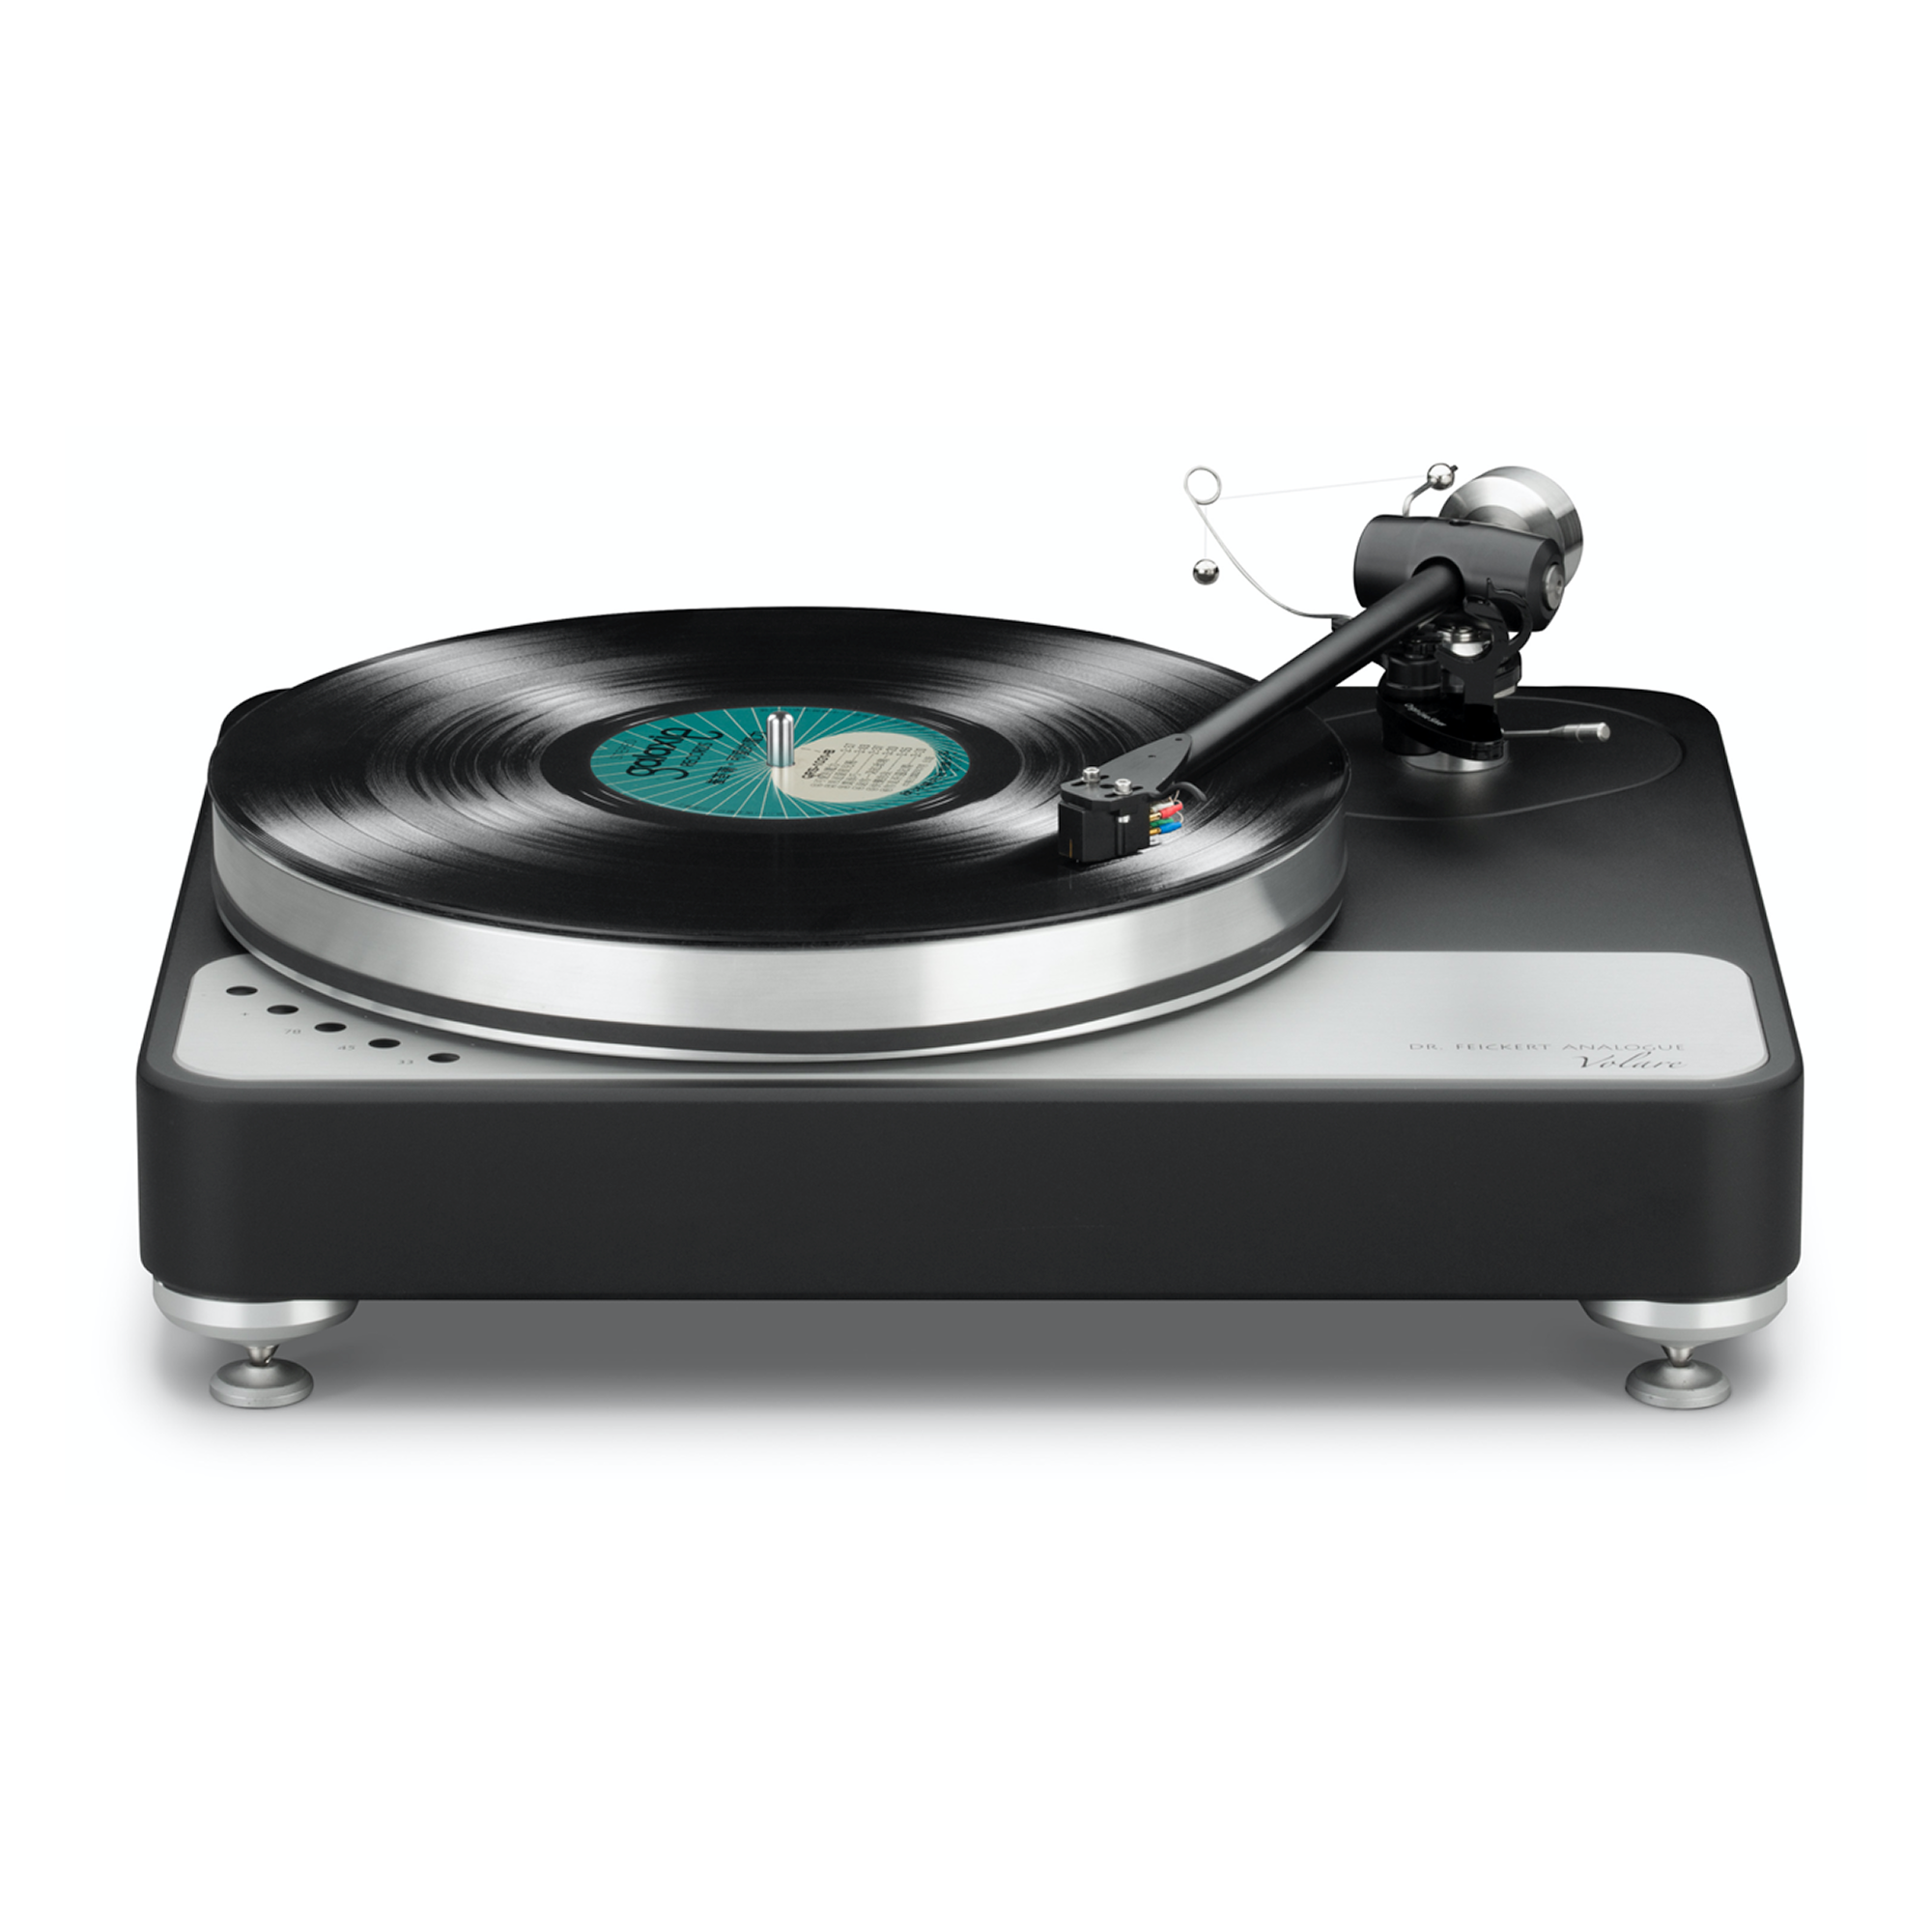 """Dr. Feickert Volare Single Motor Drive 16.5"""" x 14.17"""" x 4.9"""" Turntable"""